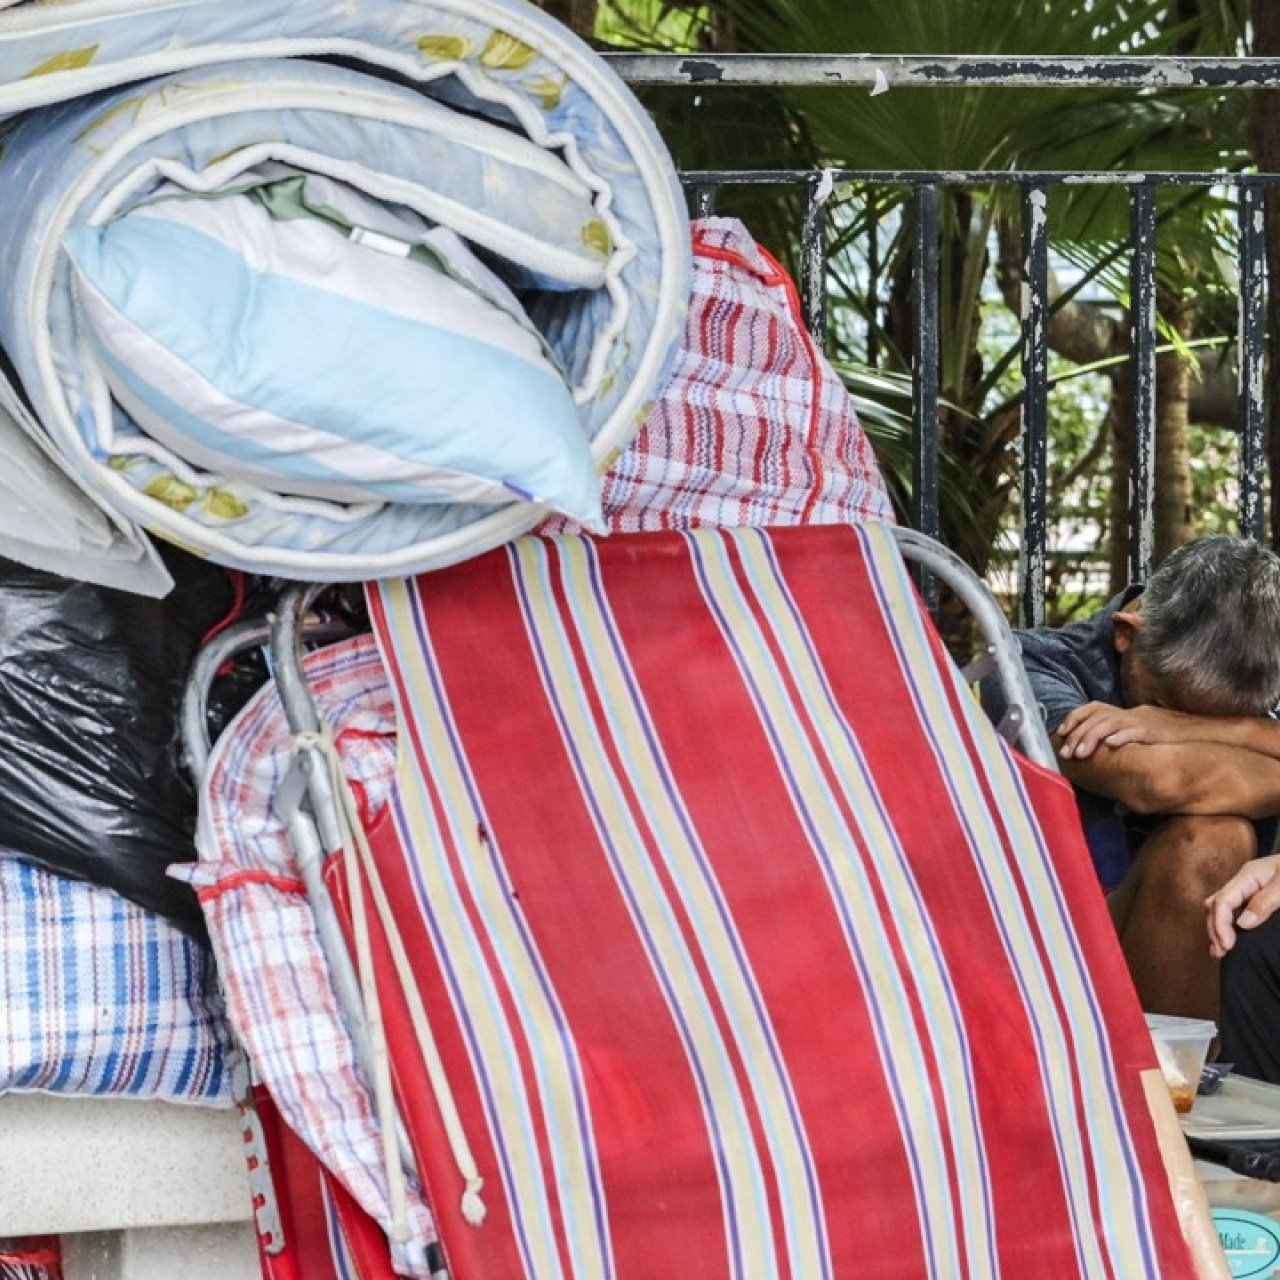 f574ba3c2837 It is useless to be worried': how will Hong Kong's homeless cope ...